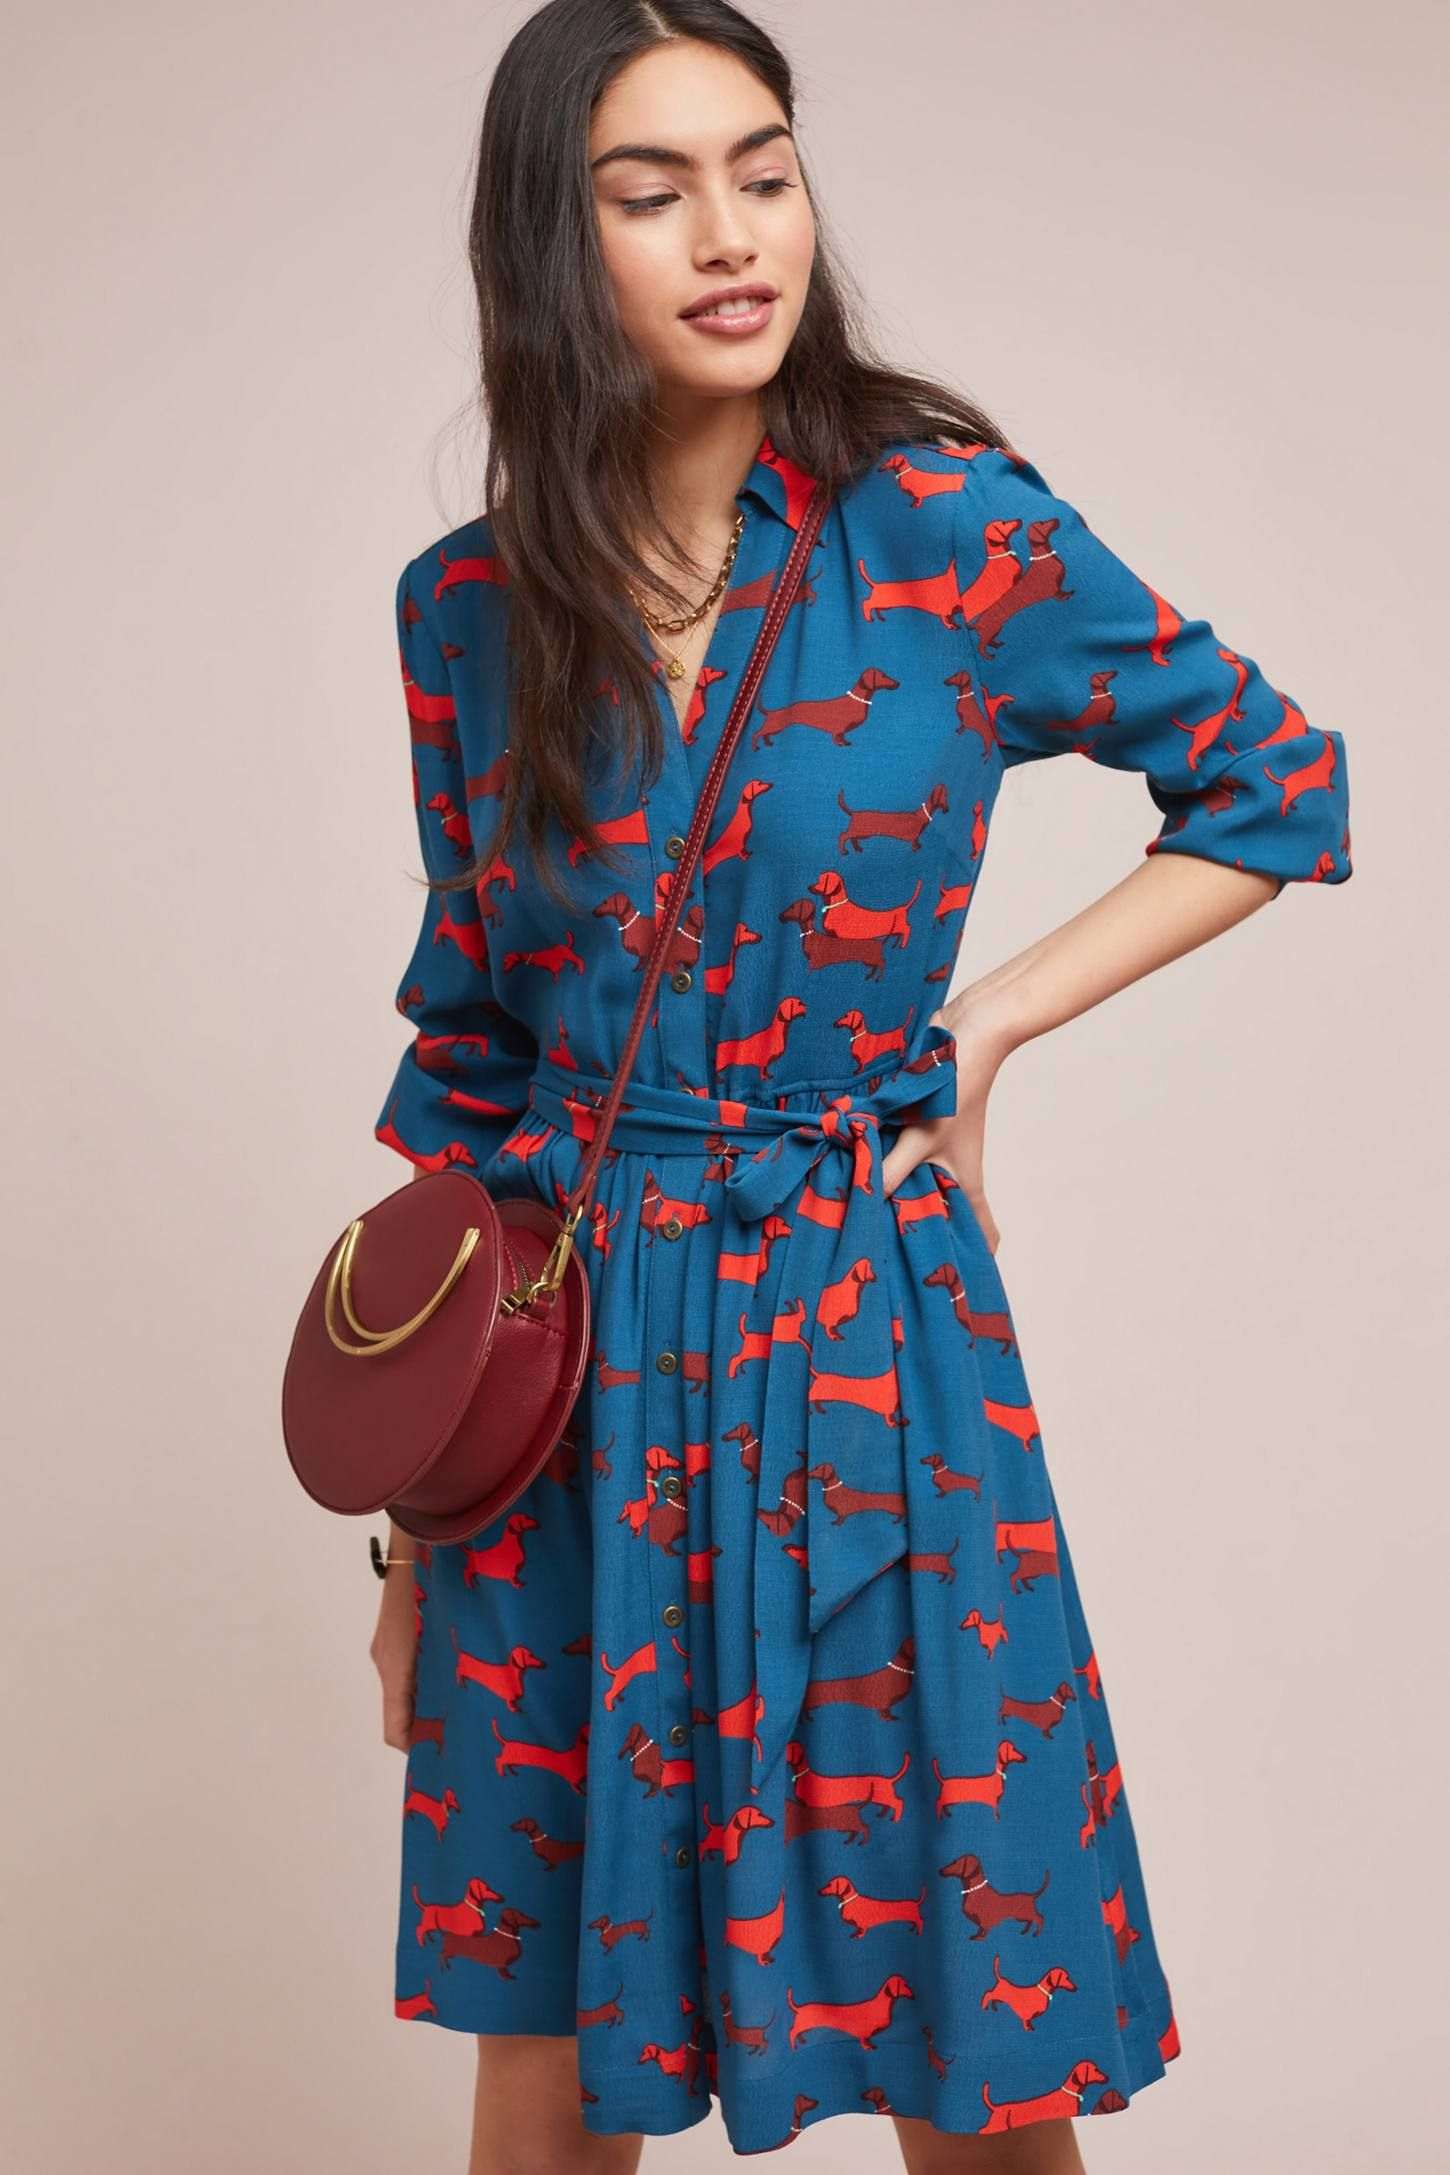 caeecf343dc43 Colloquial Long-Sleeved Shirtdress | Doxie Delight! | Long sleeve ...